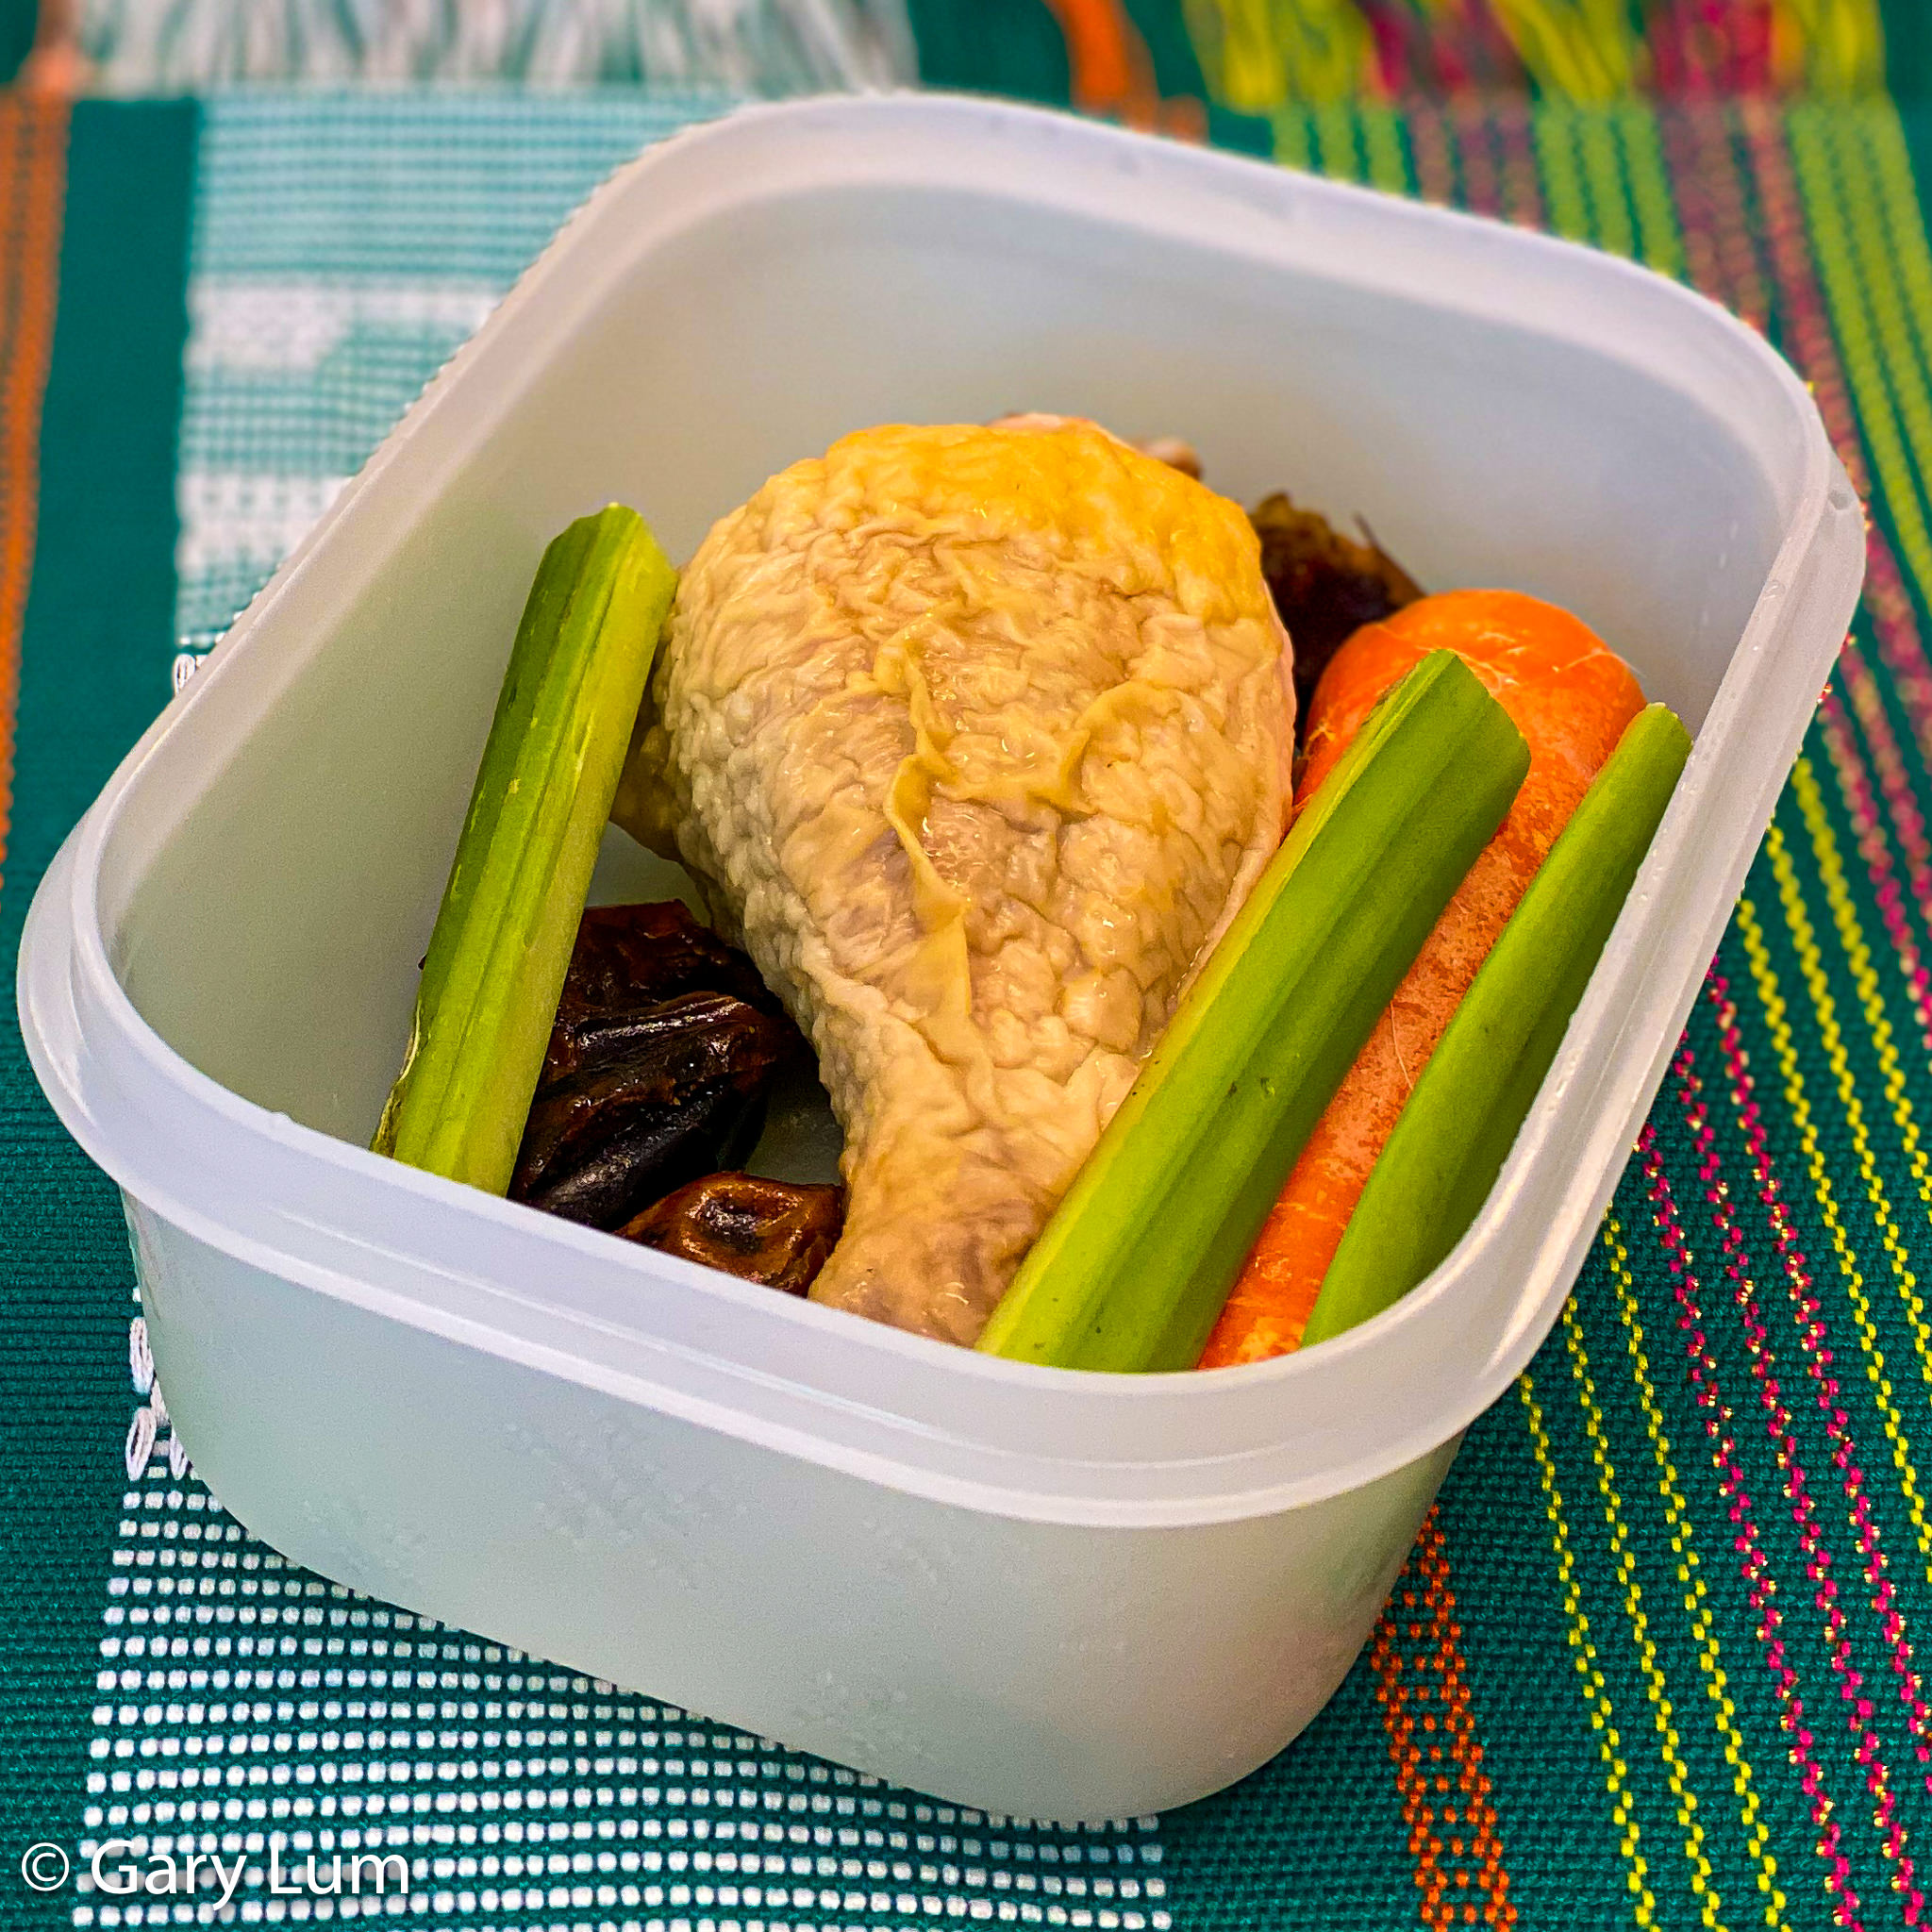 Chicken drumstick with carrot, celery, and dates. Gary Lum.